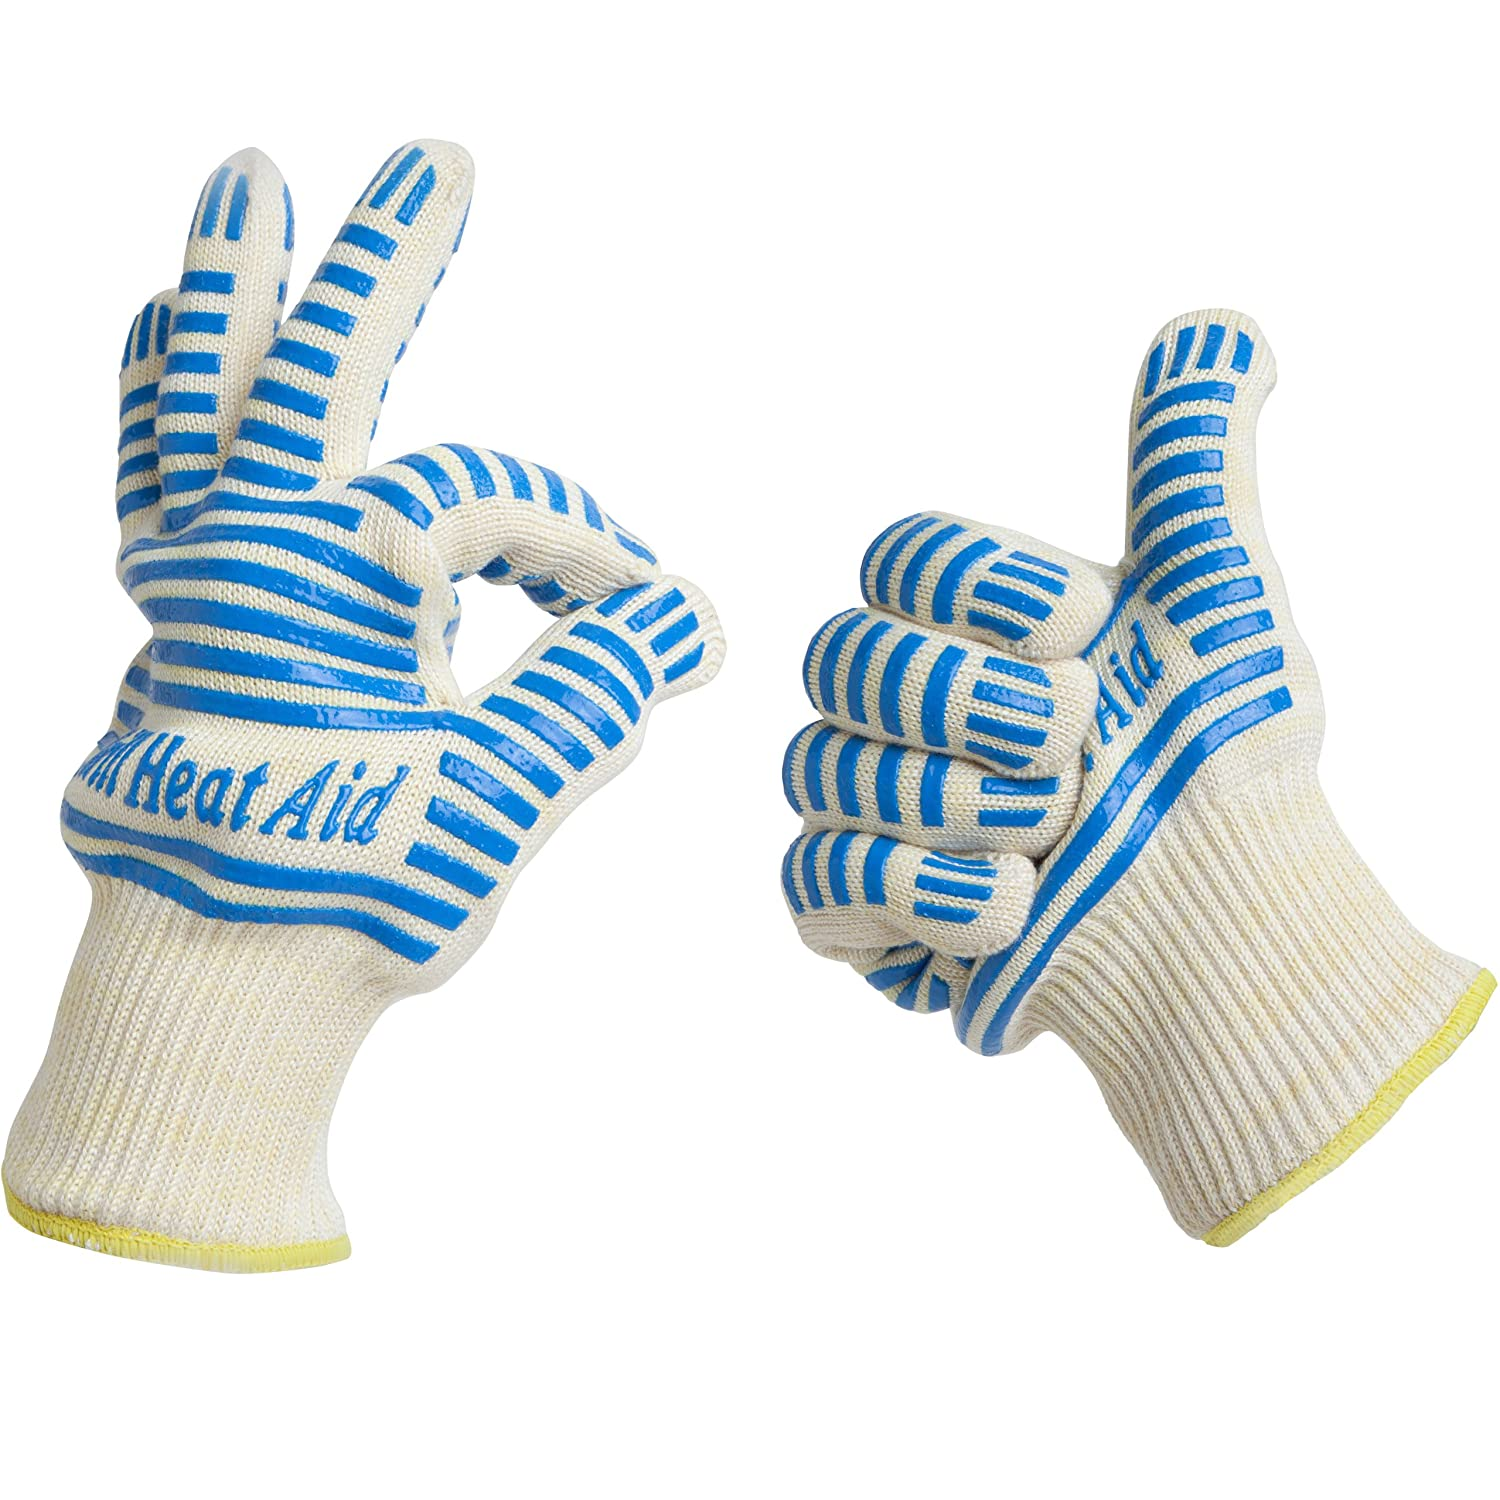 heat aid oven gloves